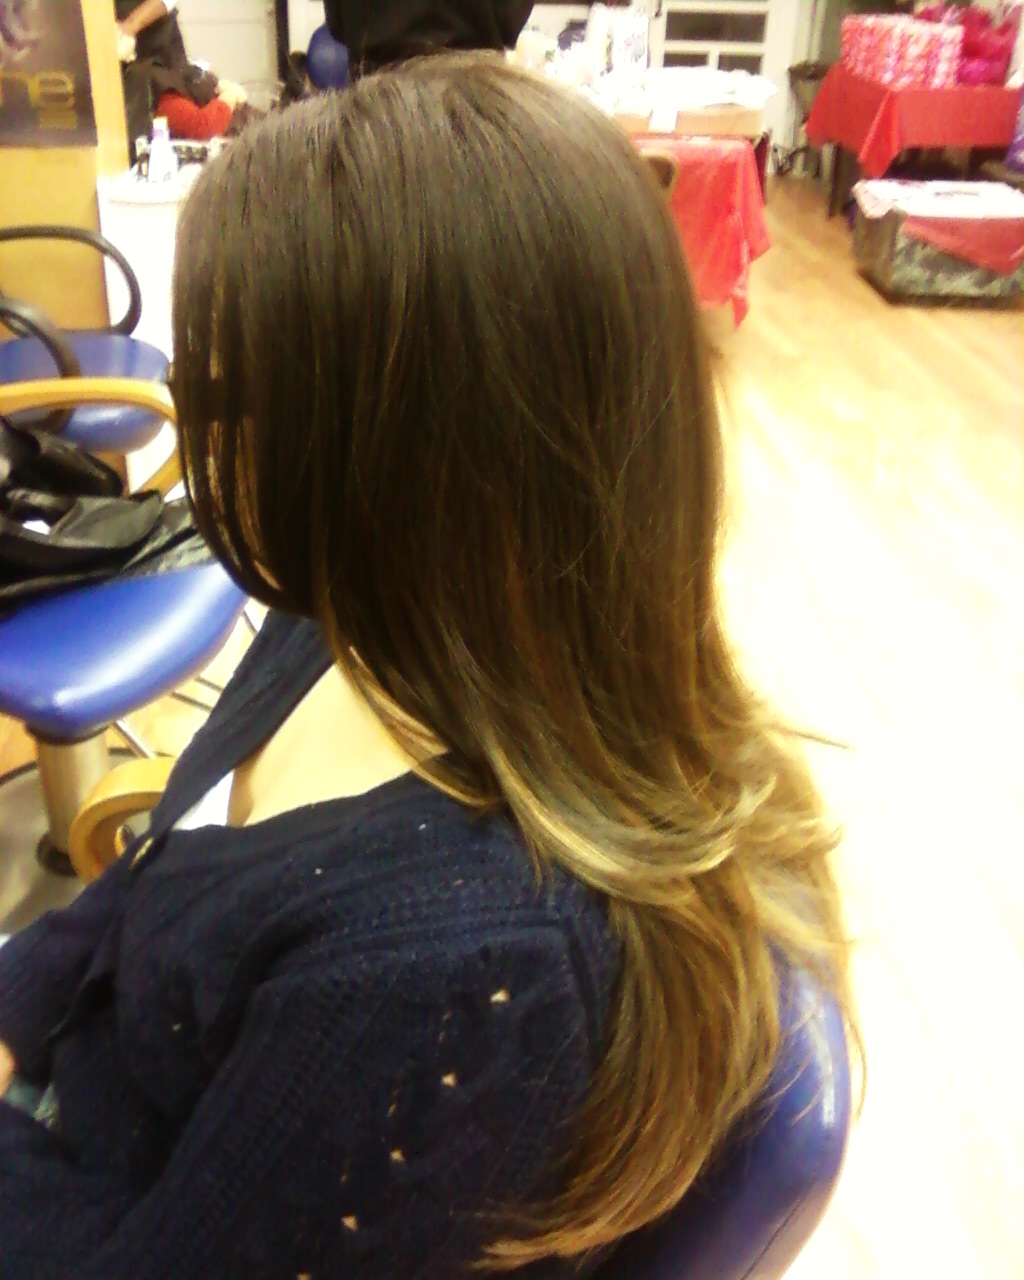 Katrinacorrea Hair Stylists In Baldwin Ny Salonsearch Com